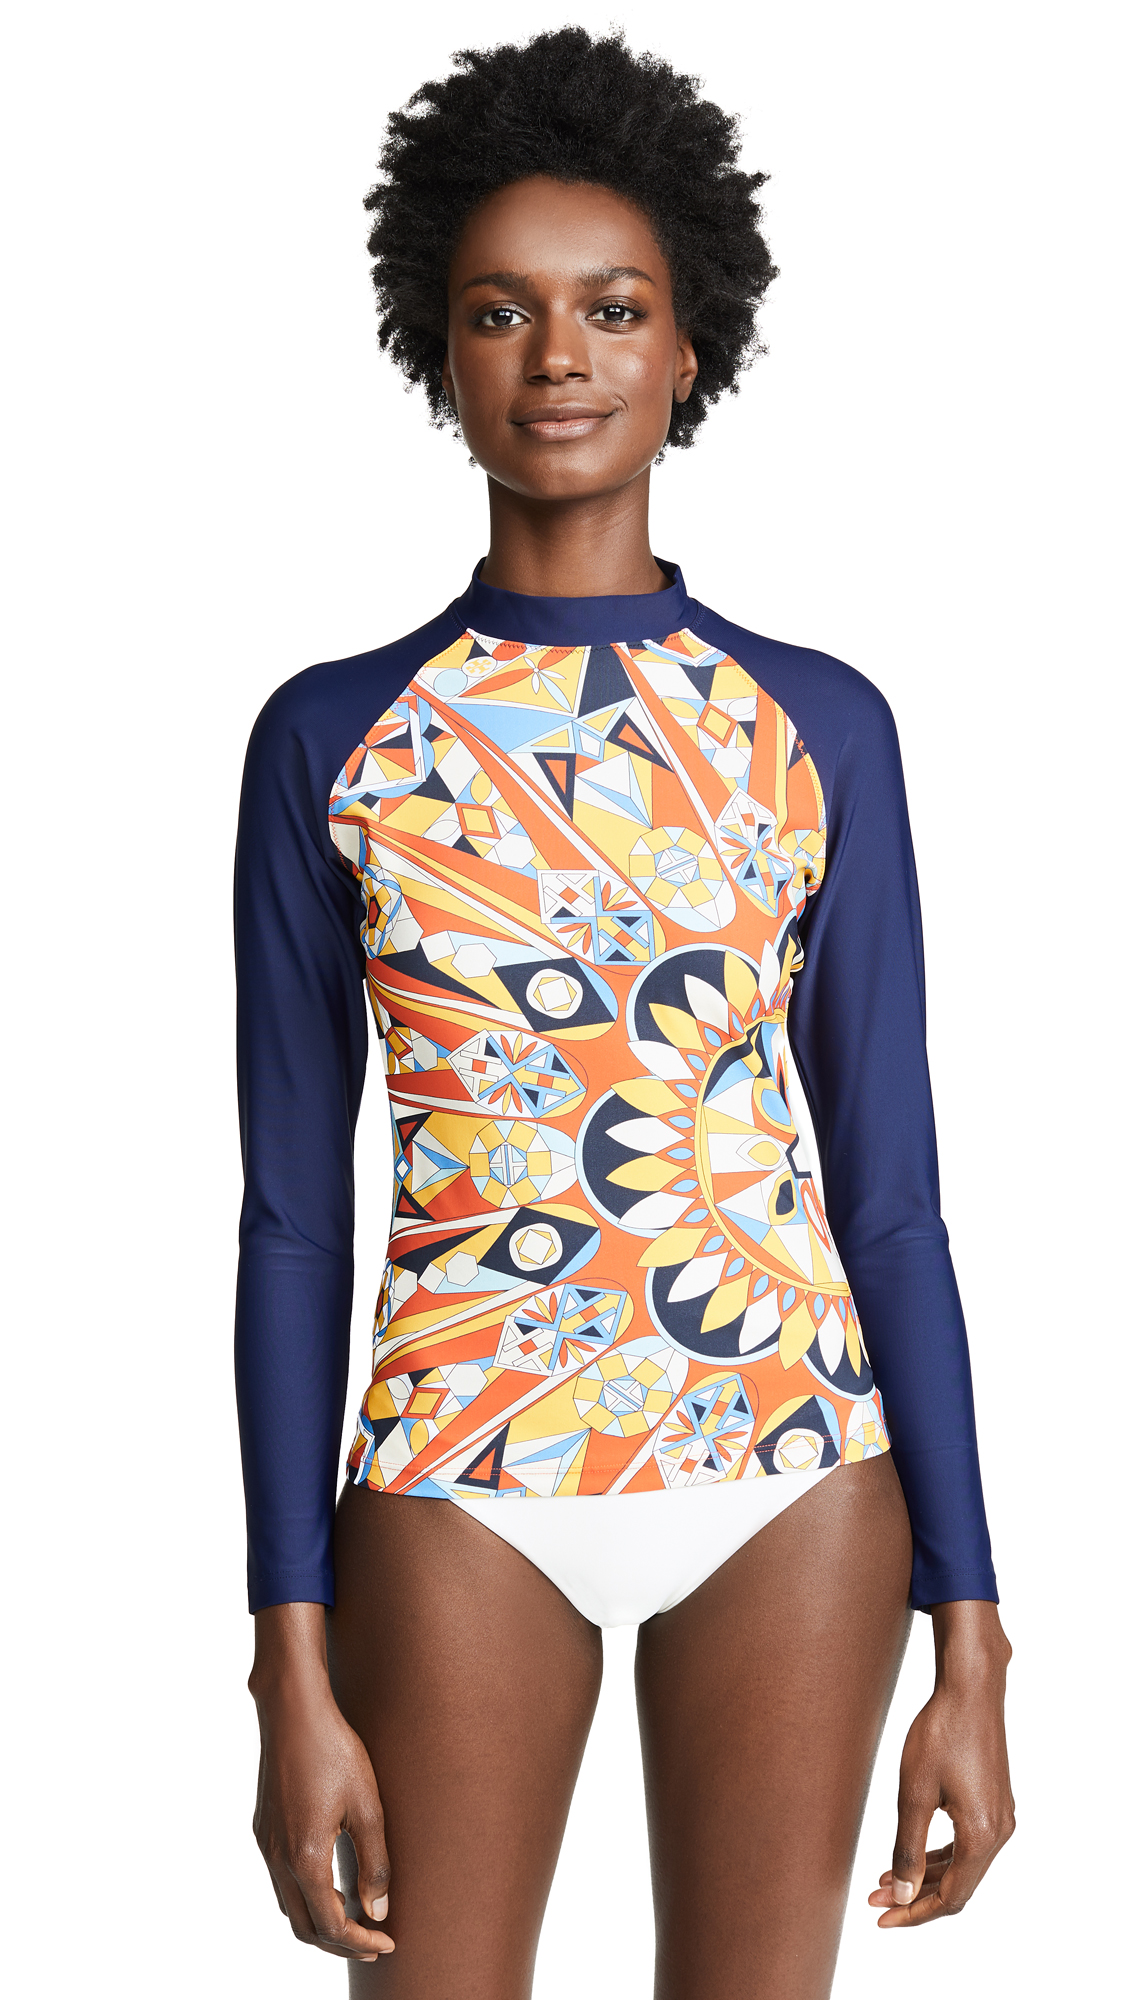 Tory Burch Kaleidoscope Rash Guard In Orange